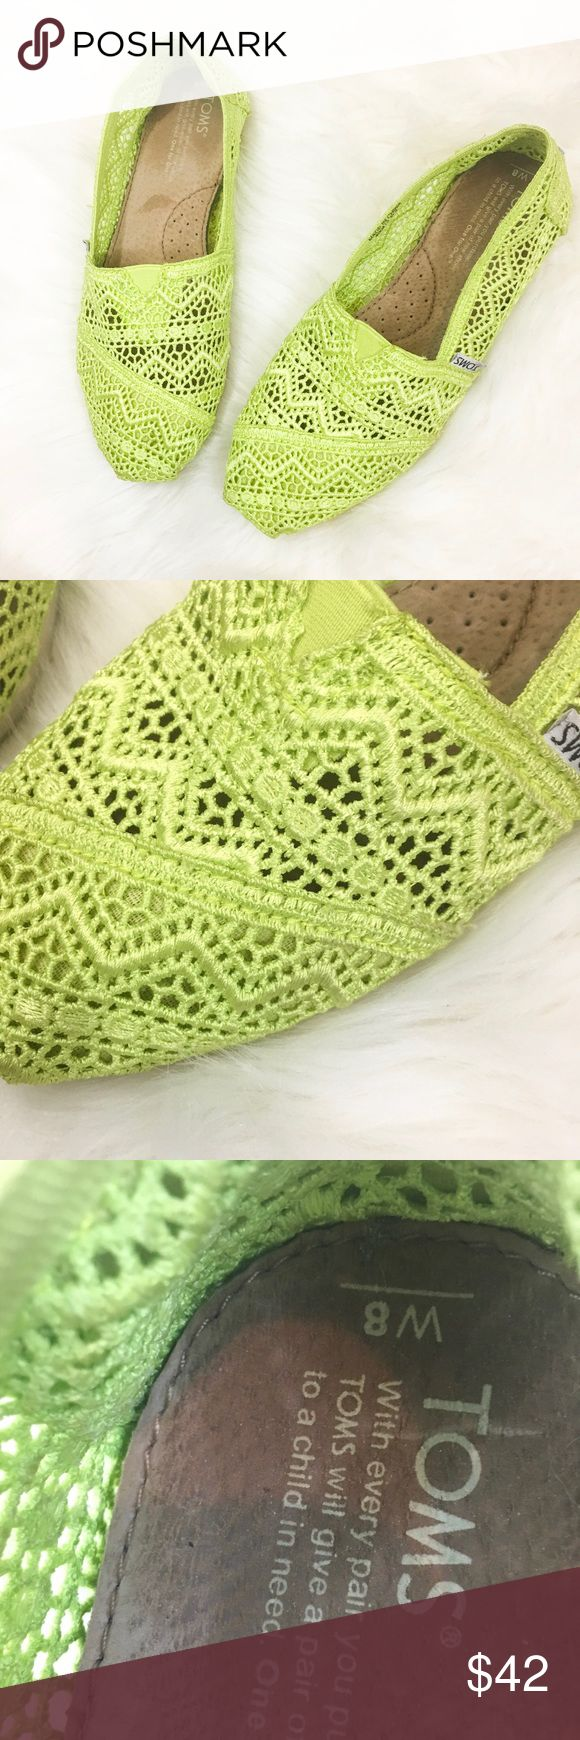 """Toms Crochet Classics In excellent used condition, Crochet slip on classics in Pantone's Spring 2018 color """"Lime Punch""""! Toms Shoes Flats & Loafers"""